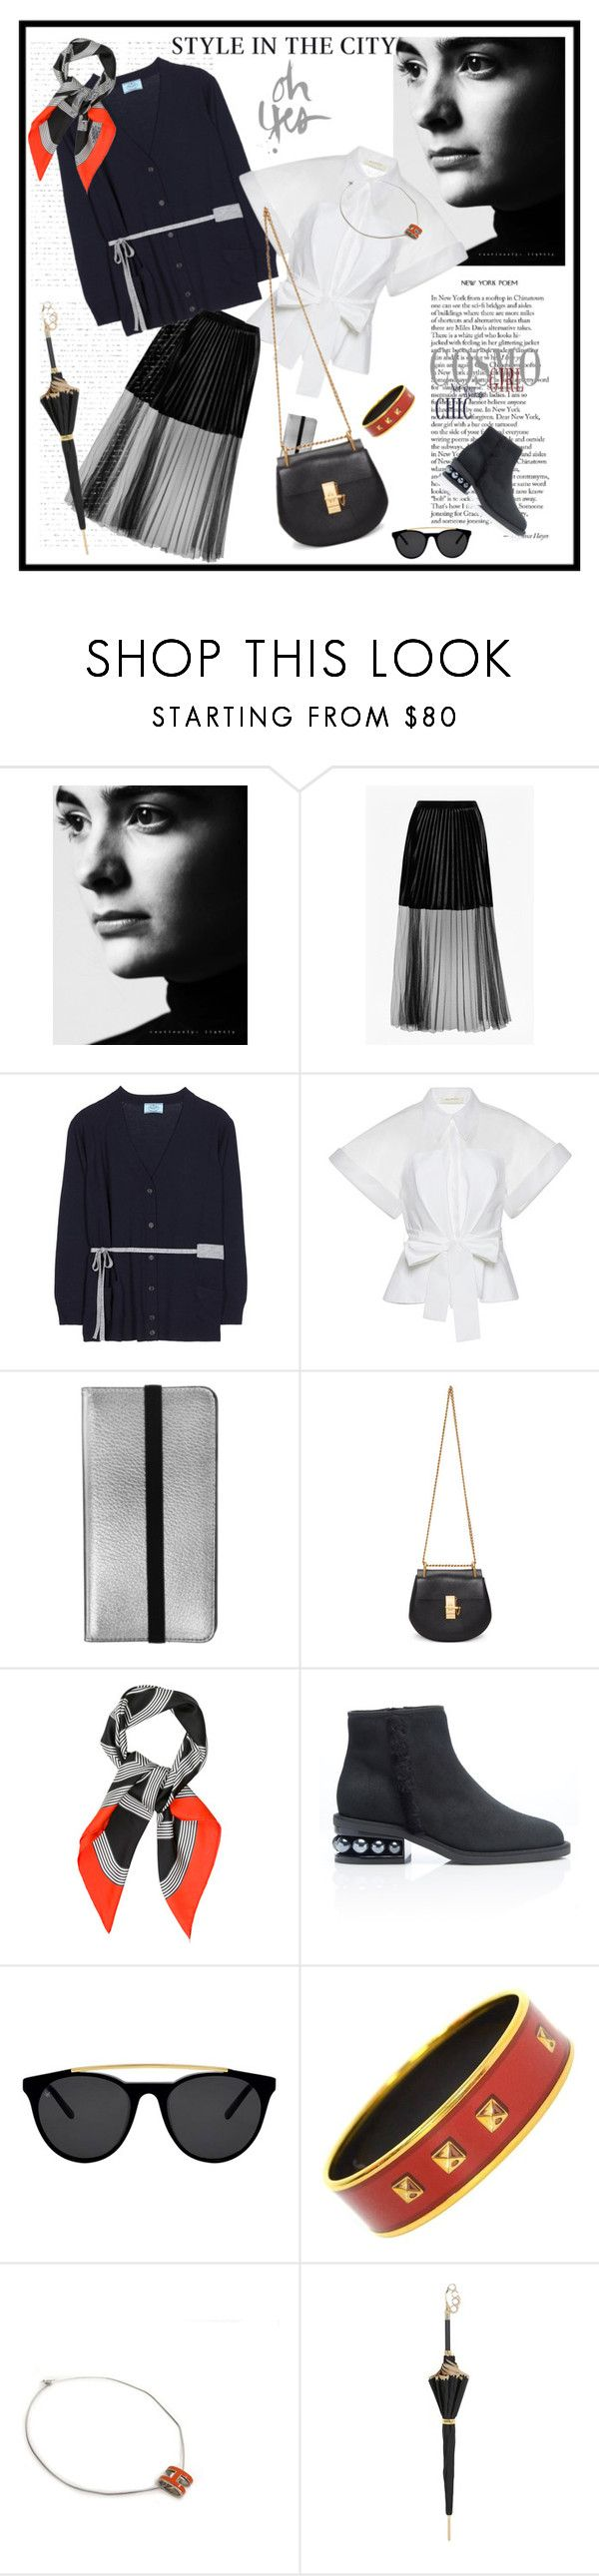 """Style in the City♥♥♥"" by marthalux ❤ liked on Polyvore featuring French Connection, Prada, Delpozo, MobileLuxe, Chloé, Hermès, Nicholas Kirkwood, Smoke x Mirrors and Pasotti Ombrelli"